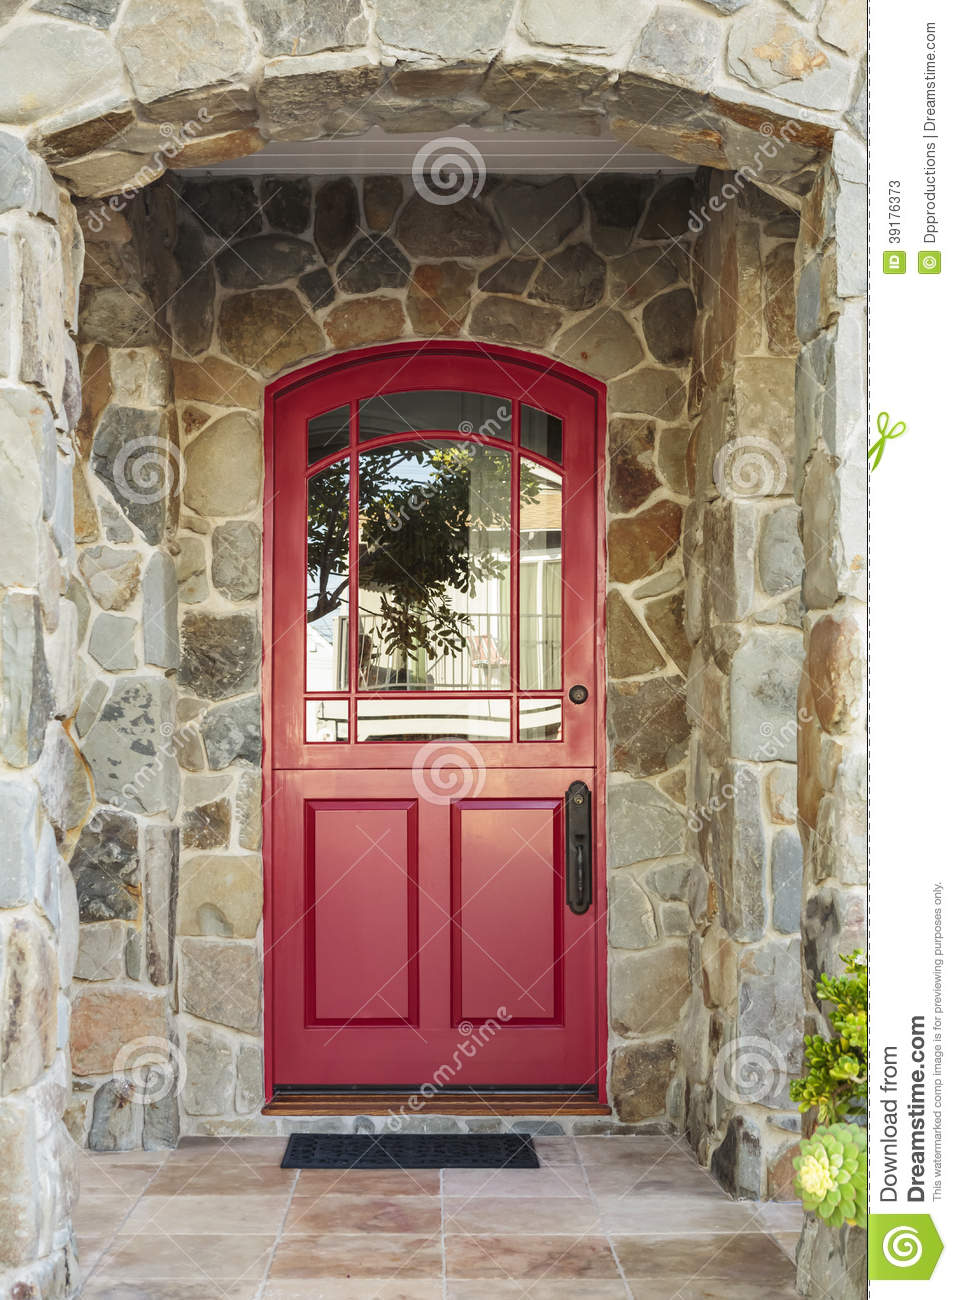 Stone House And Red Front Door Stock Photo.